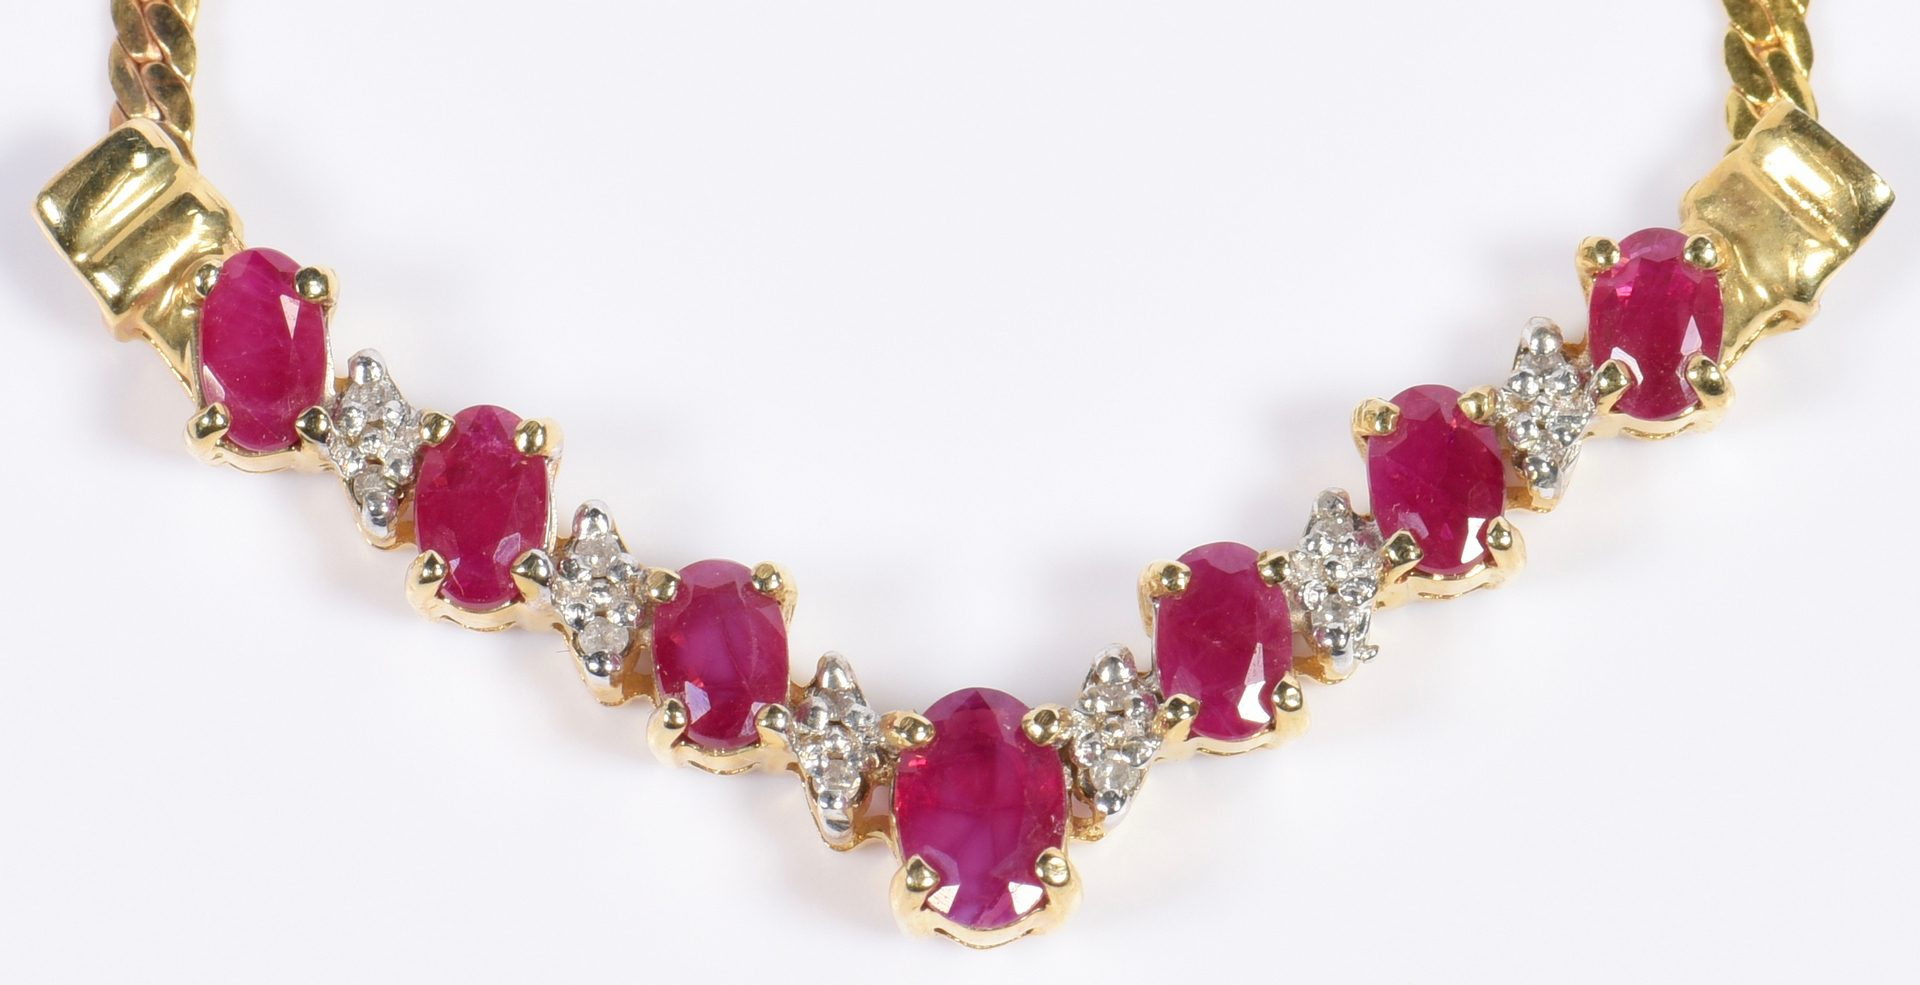 Lot 19: Group of Gold and Ruby Jewelry